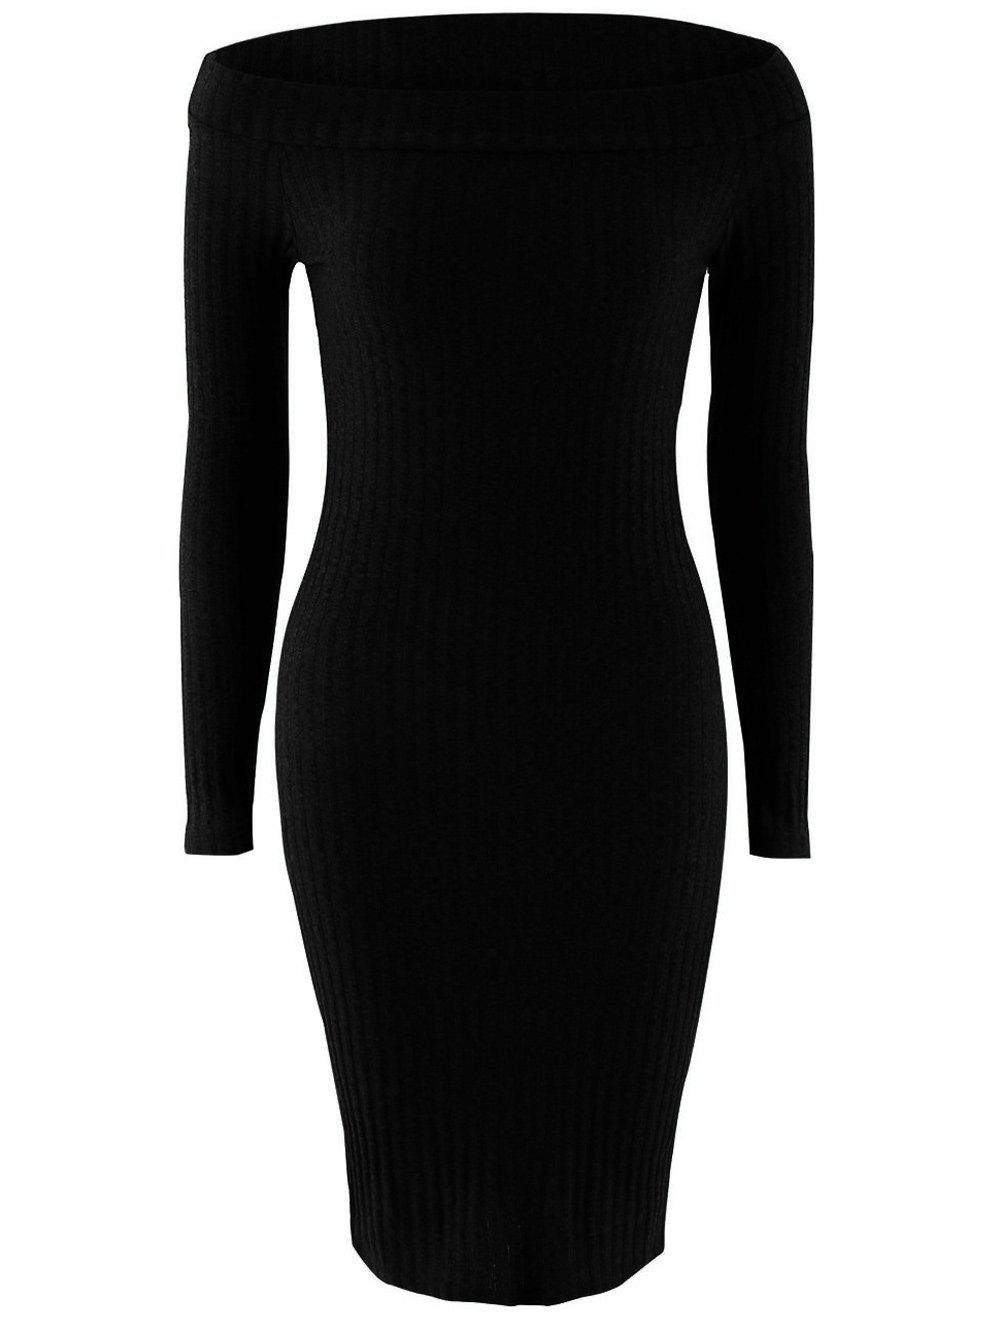 Off Shoulder Long Sleeve Skinny Knit Dress - BLACK XL